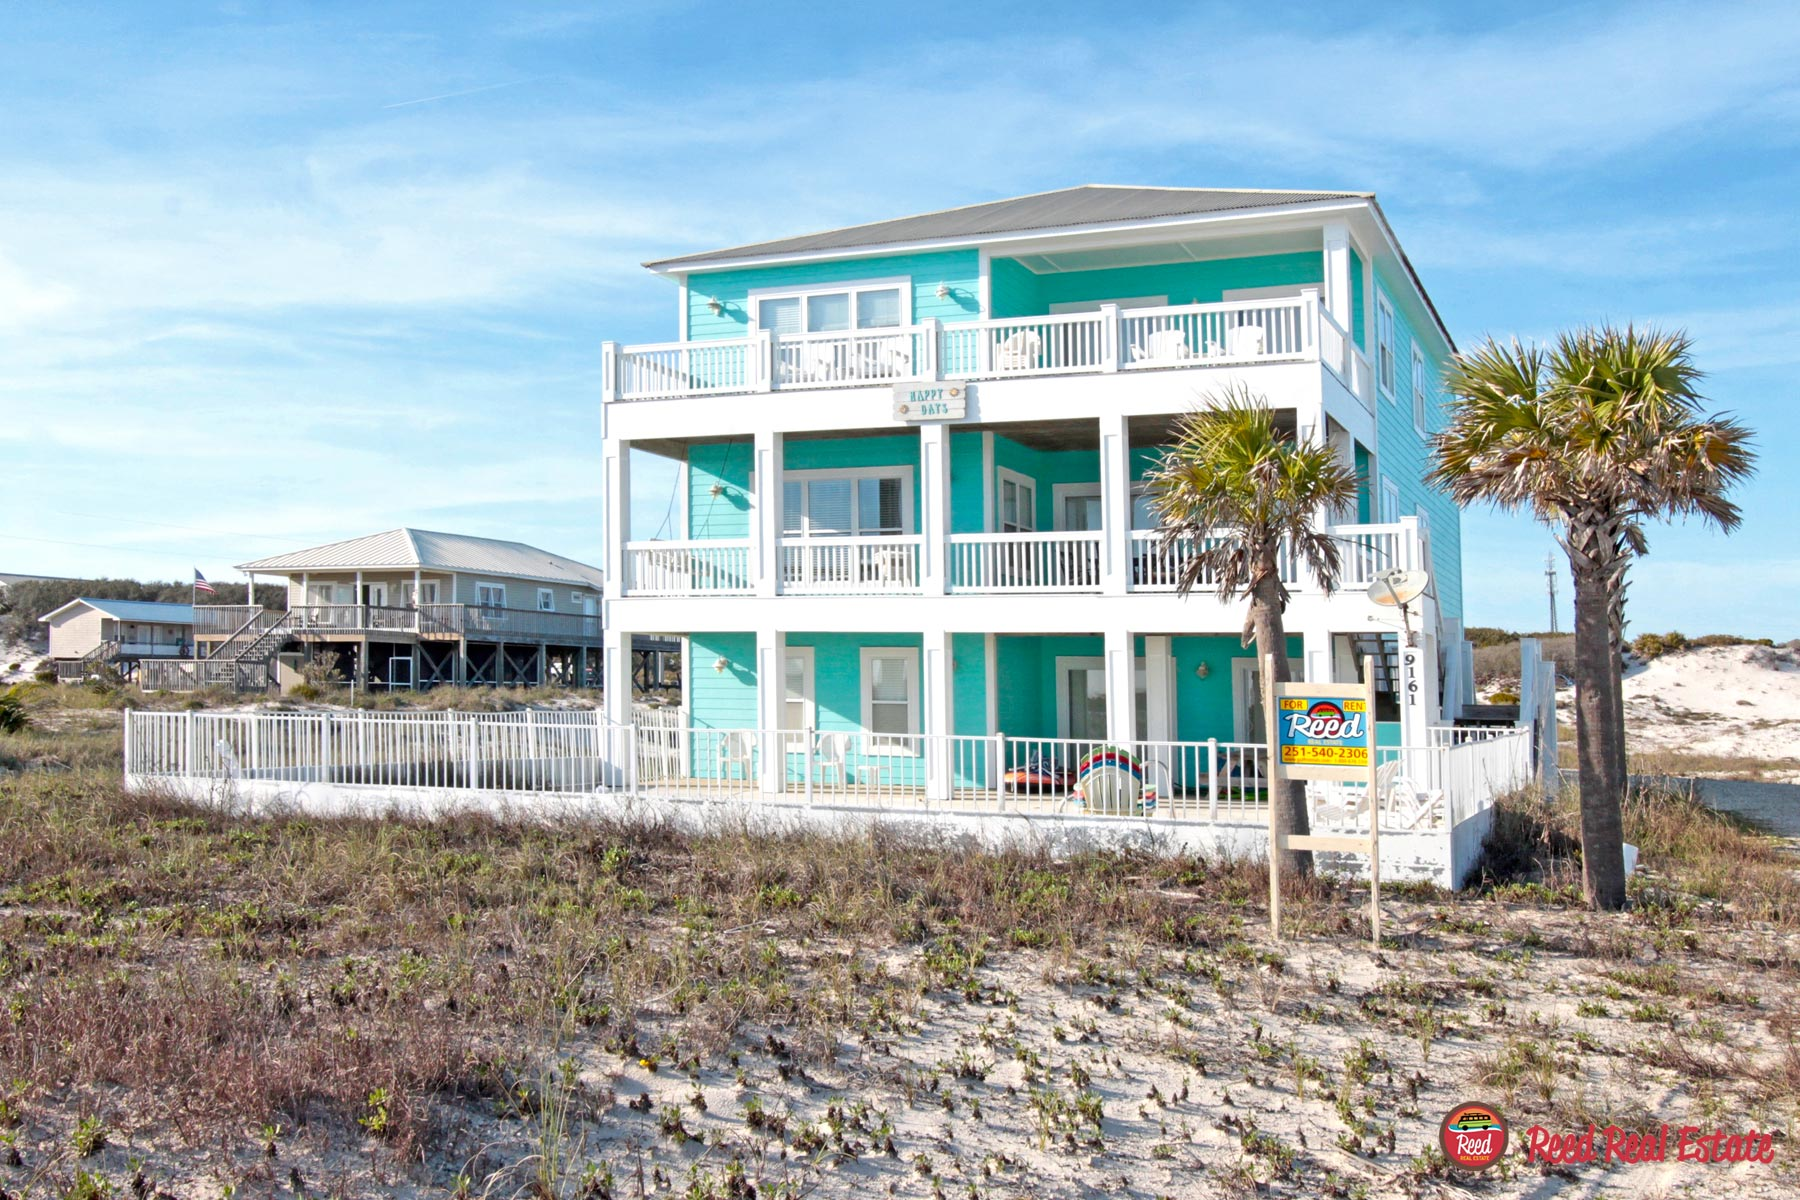 9 Bedroom Houses On Gulf Shores Beach – Modern House